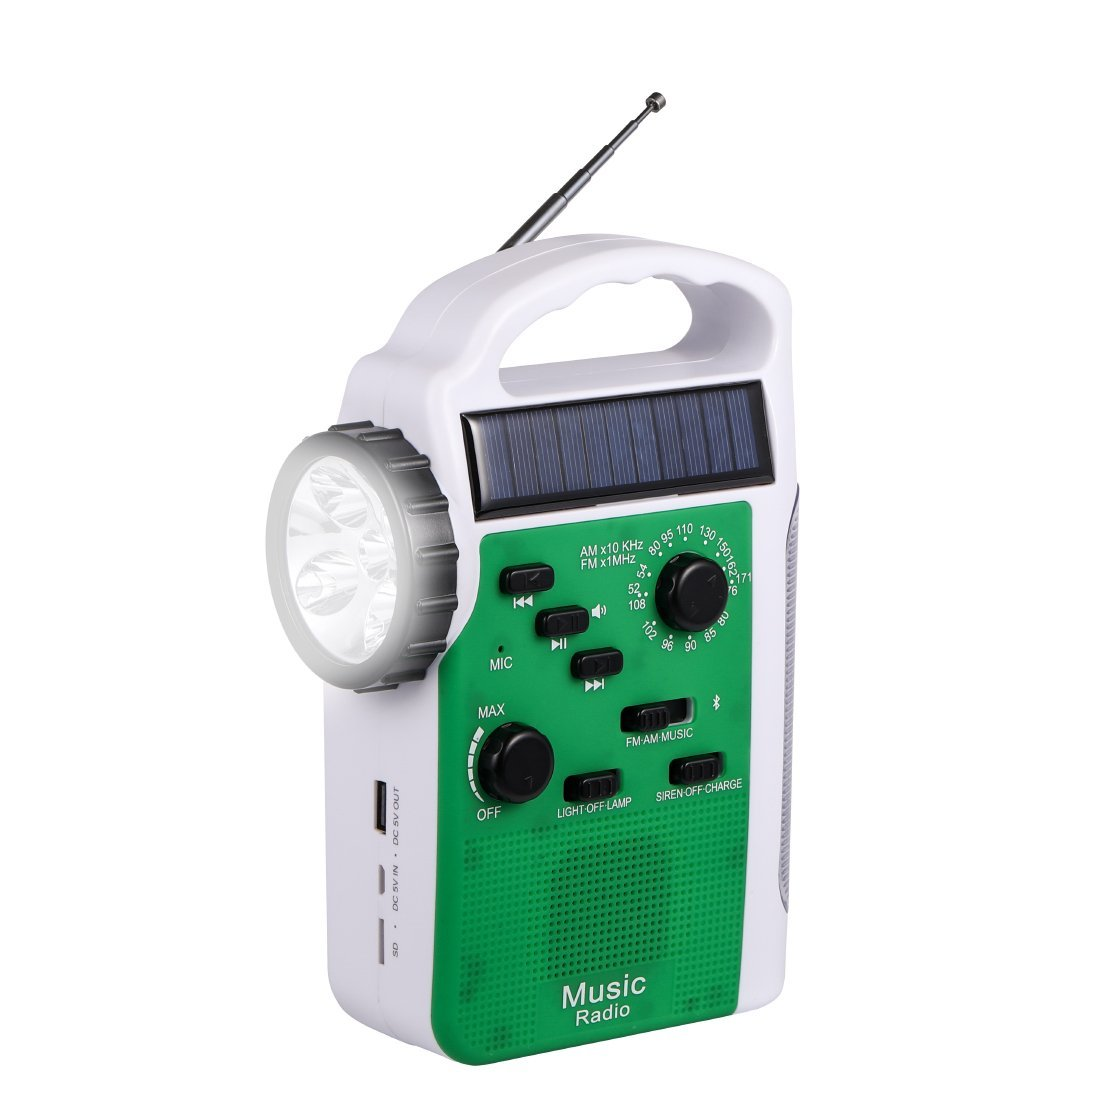 Emergency Radio with Solar and Crank, Portable Battery USB Recharging FM/AM Radio with Bluetooth Speakers LED Flashlight Camping Lantern 2300 mAh Power Bank Phone Charger MP3 Player Siren (Green) by MOLEBIT (Image #1)